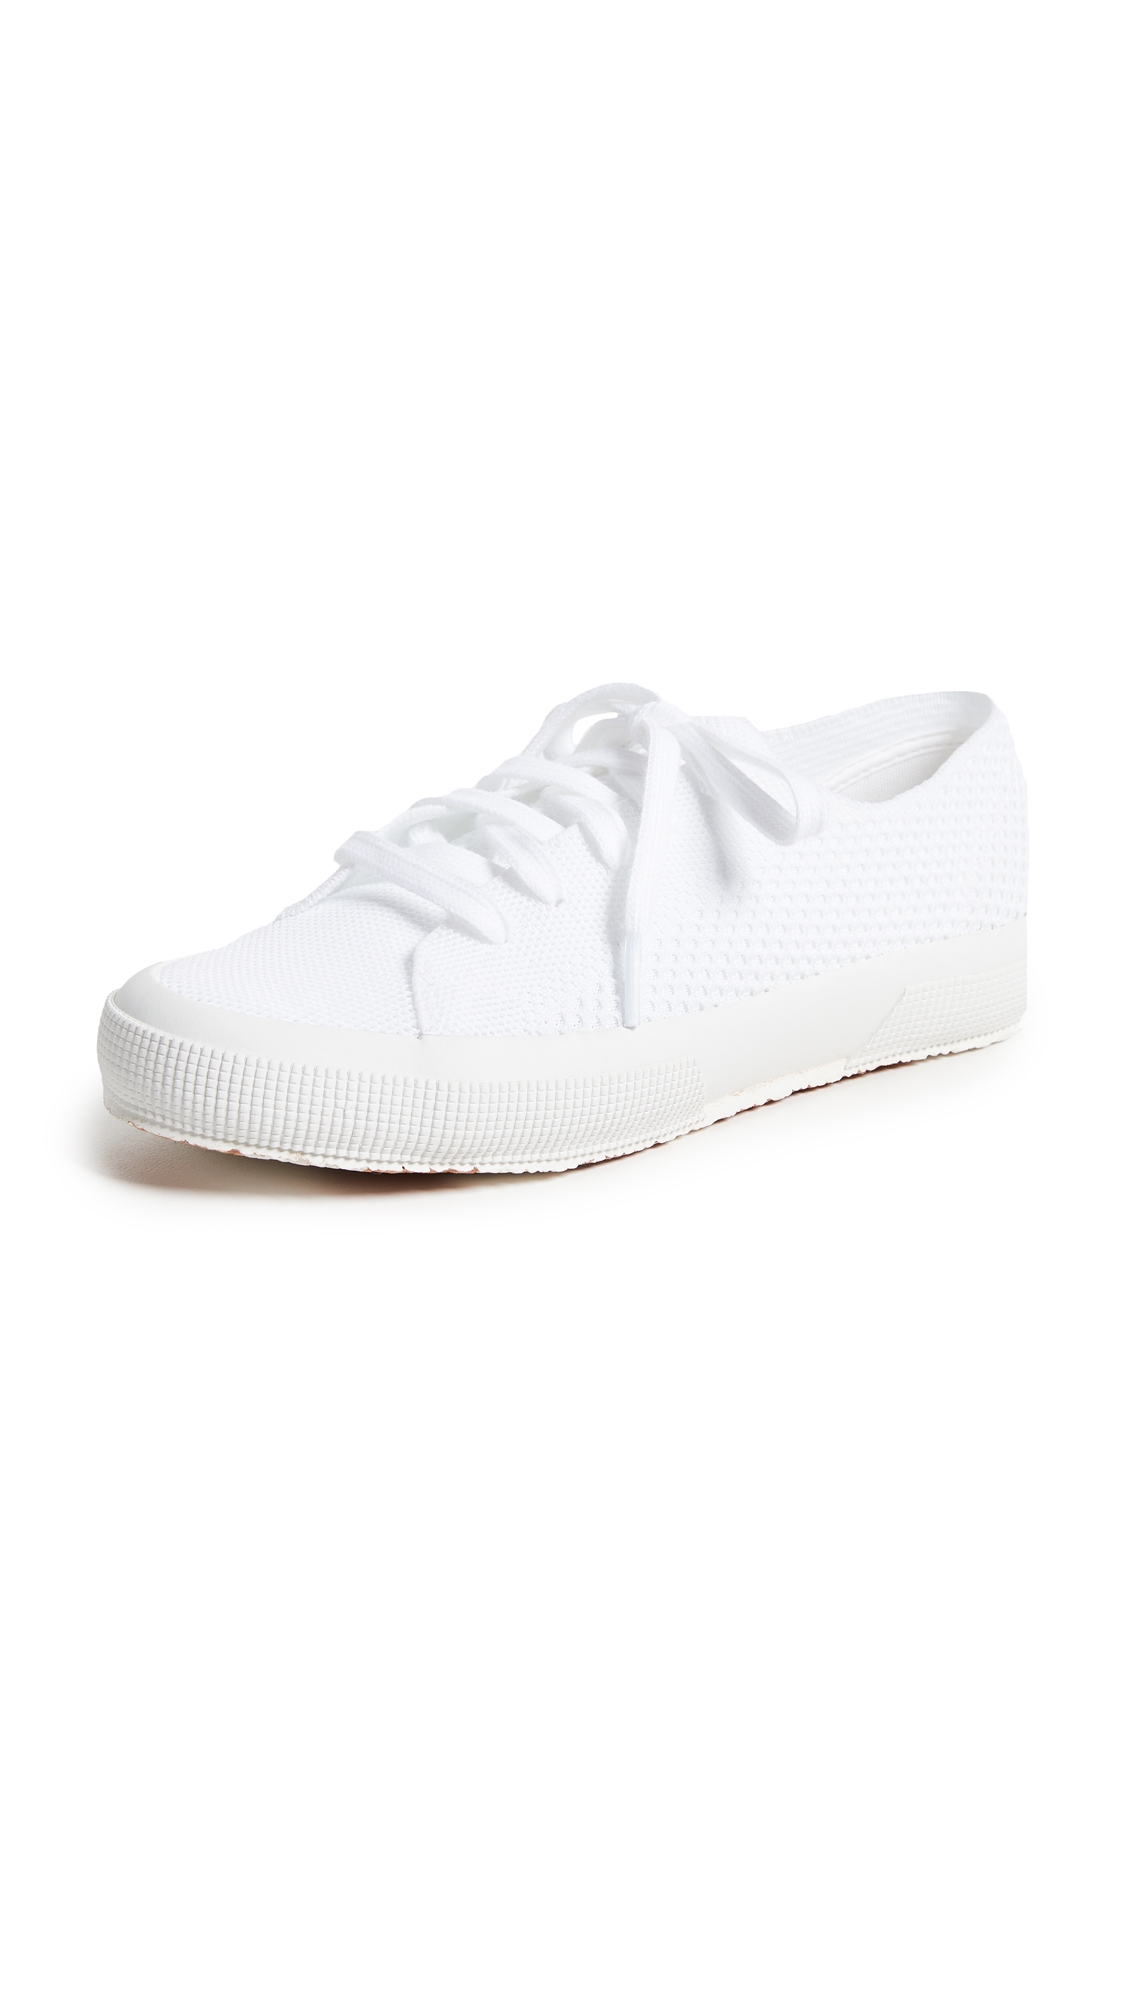 Superga 2750 Fly Knit Sneakers - White